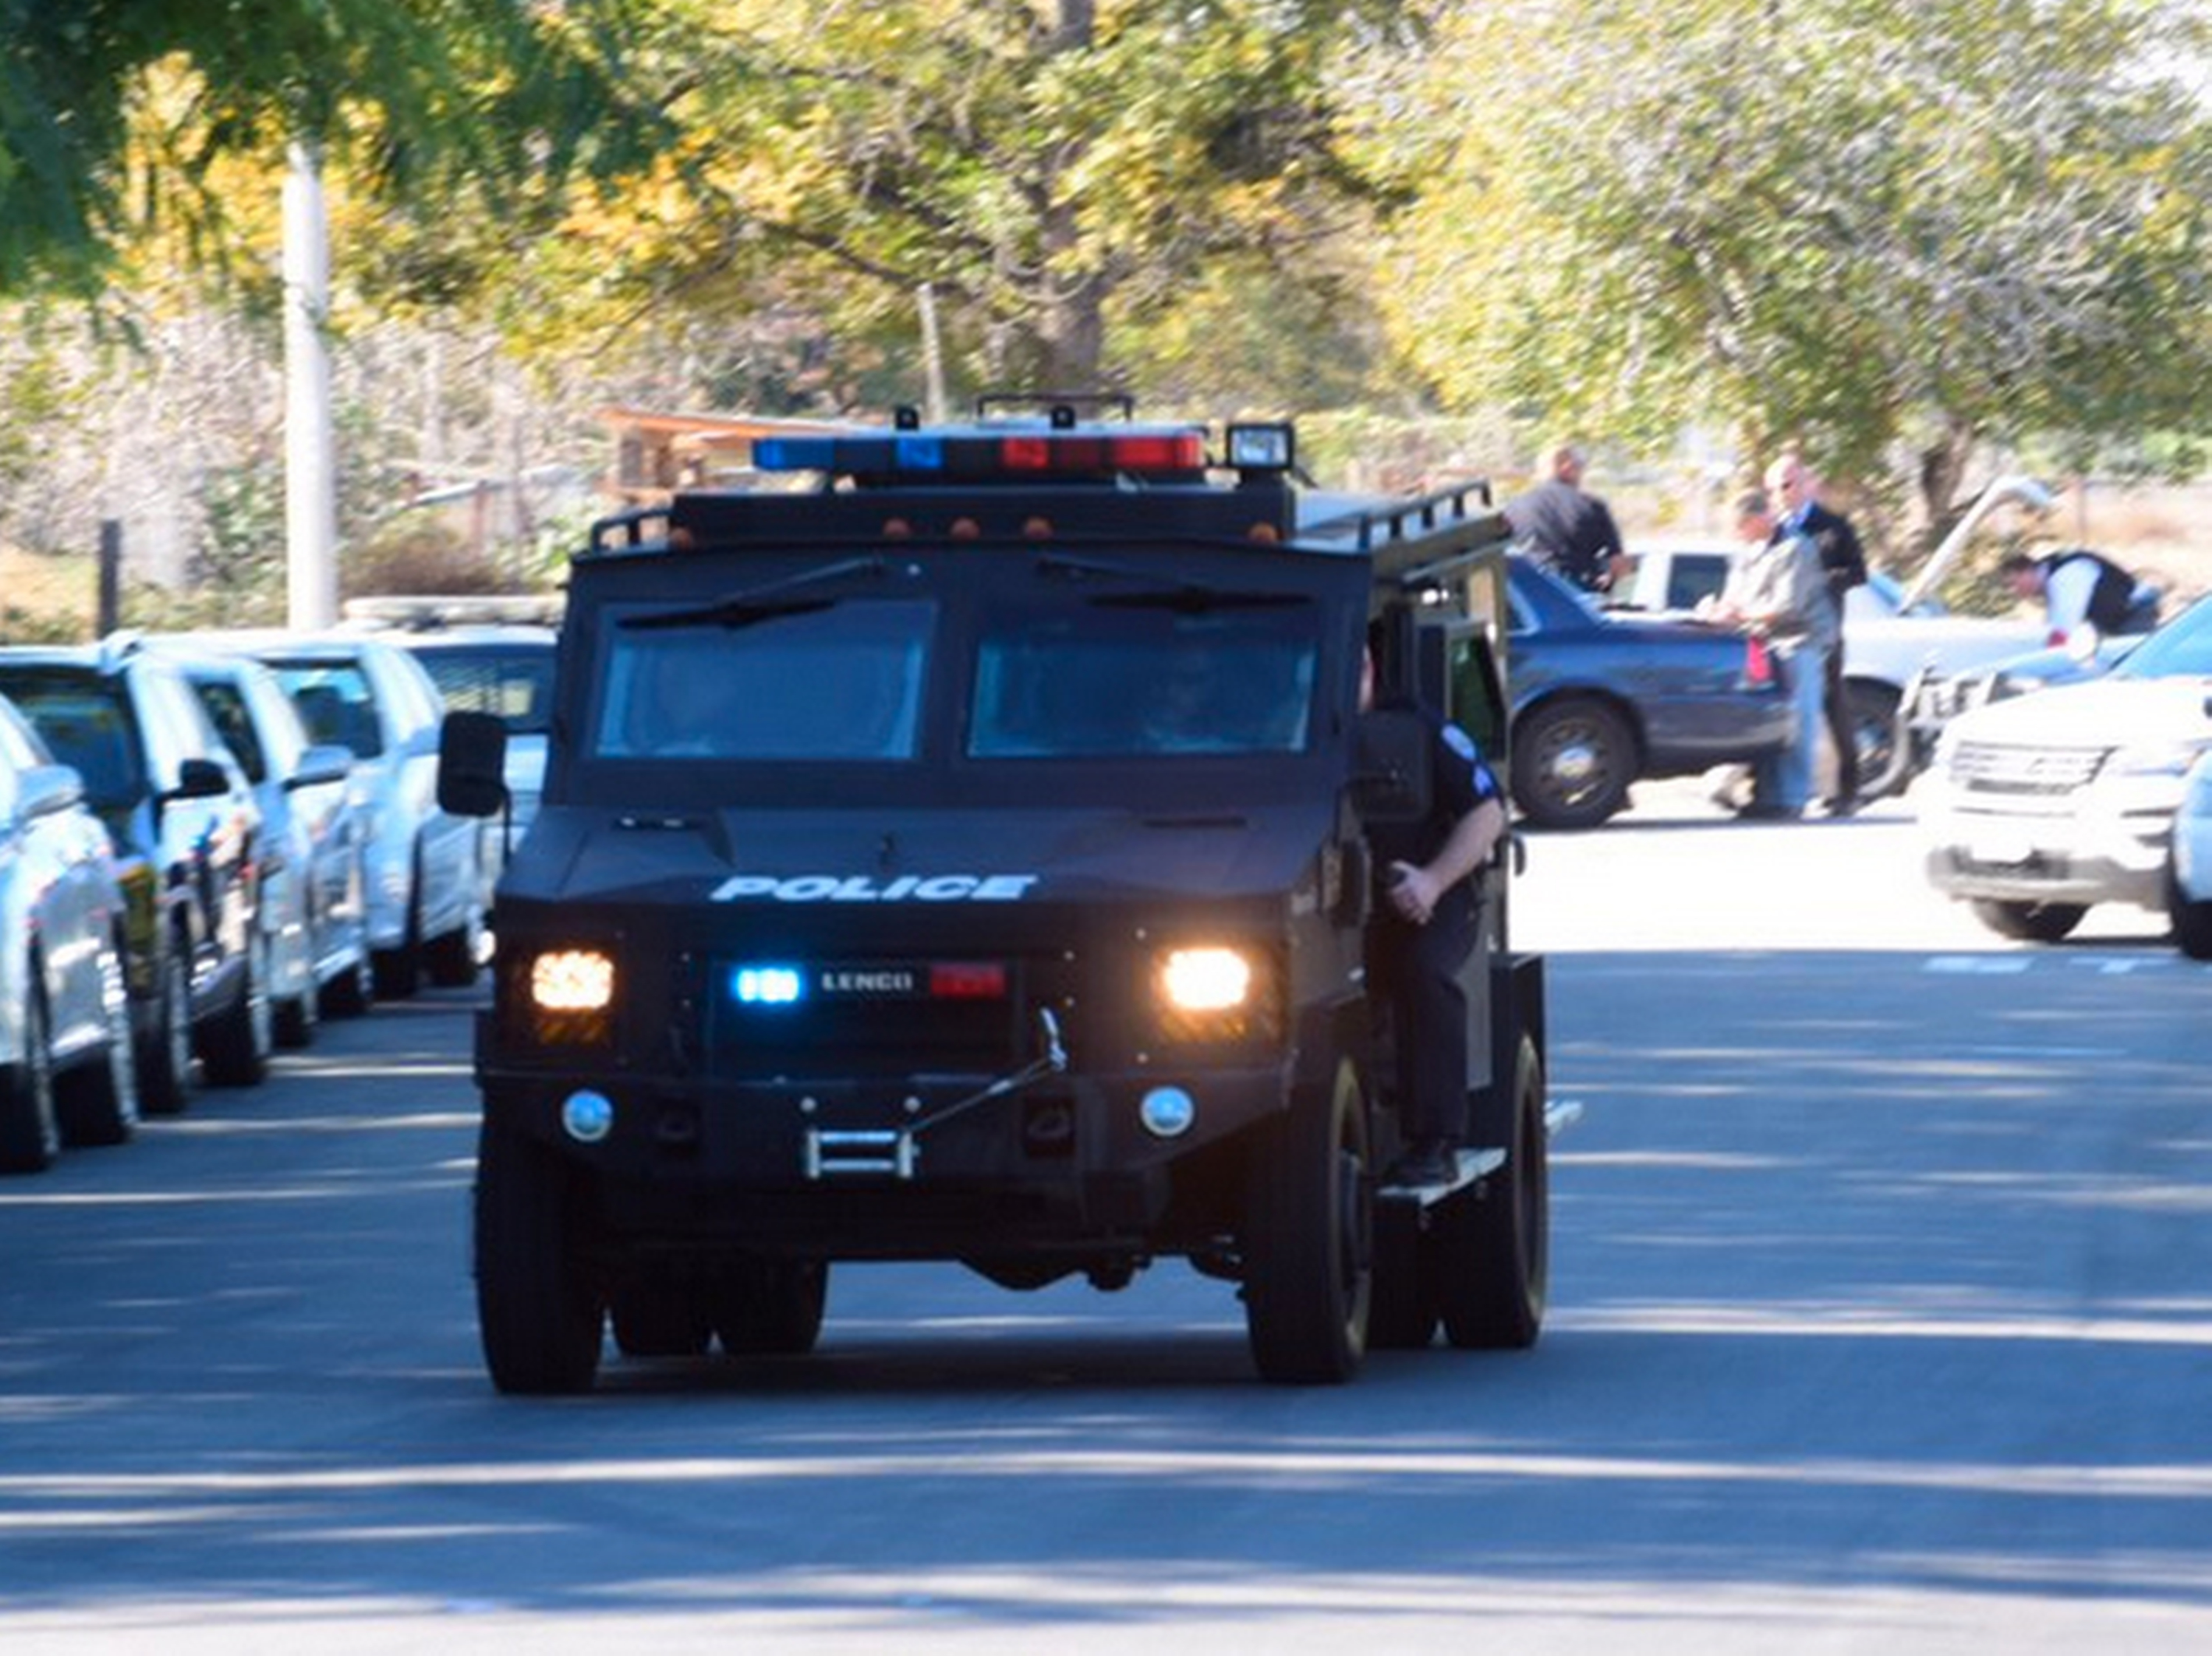 A swat team arrives at the scene of a shooting in San Bernardino, Calif., on Wednesday,  Dec. 2, 2015.  Police responded to reports of an active shooter at a social services facility. (Doug Saunders/Los Angeles News Group via AP)